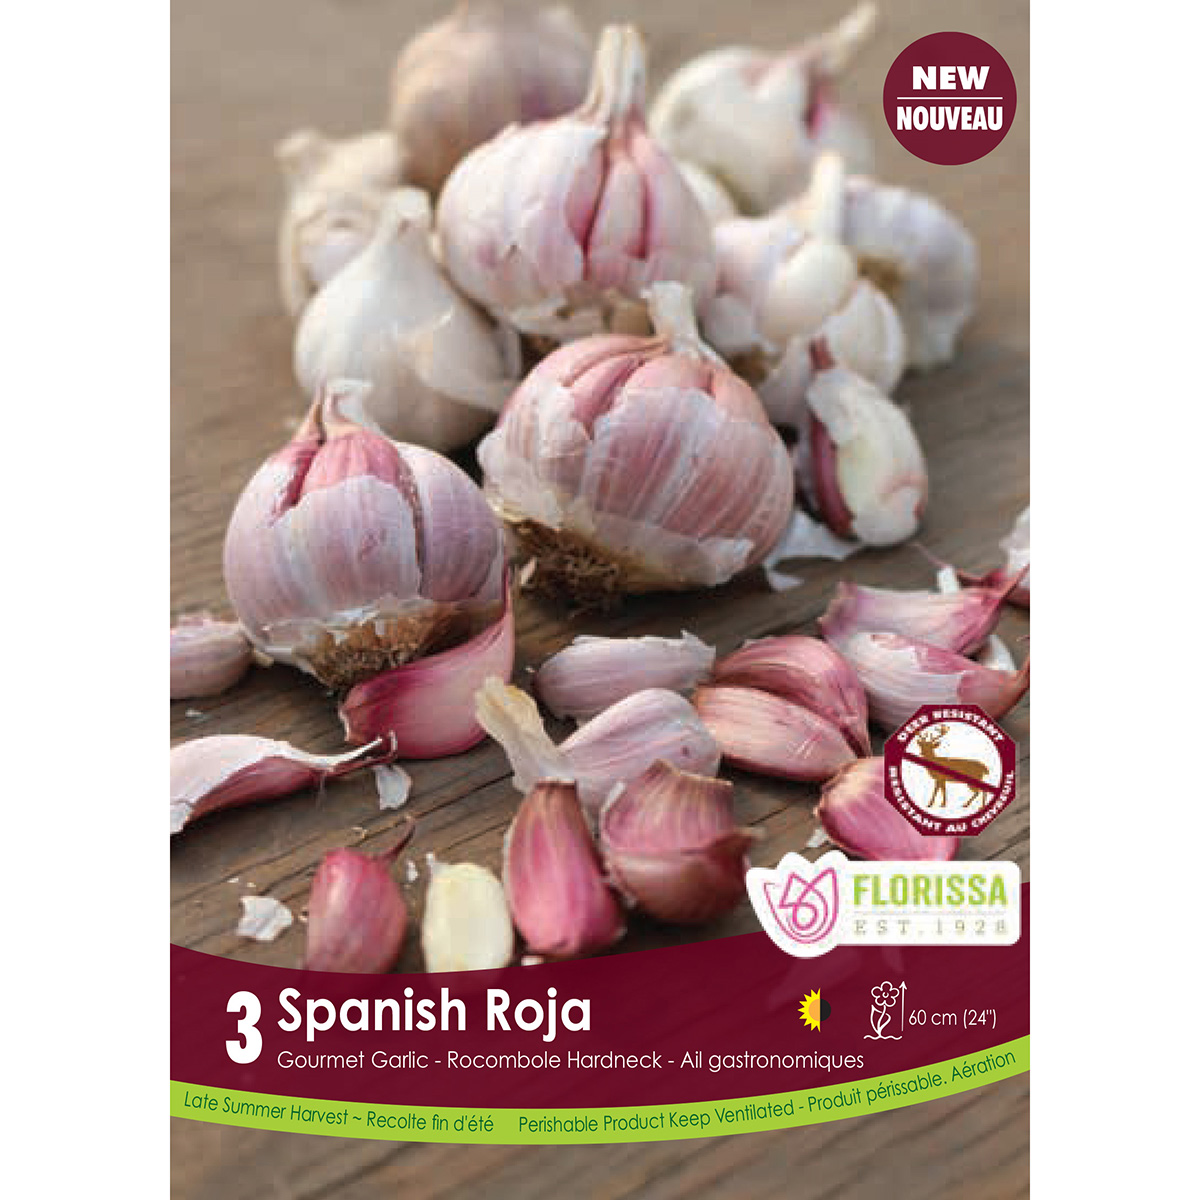 Bulb_Garlic_Spanish_Roja.jpg